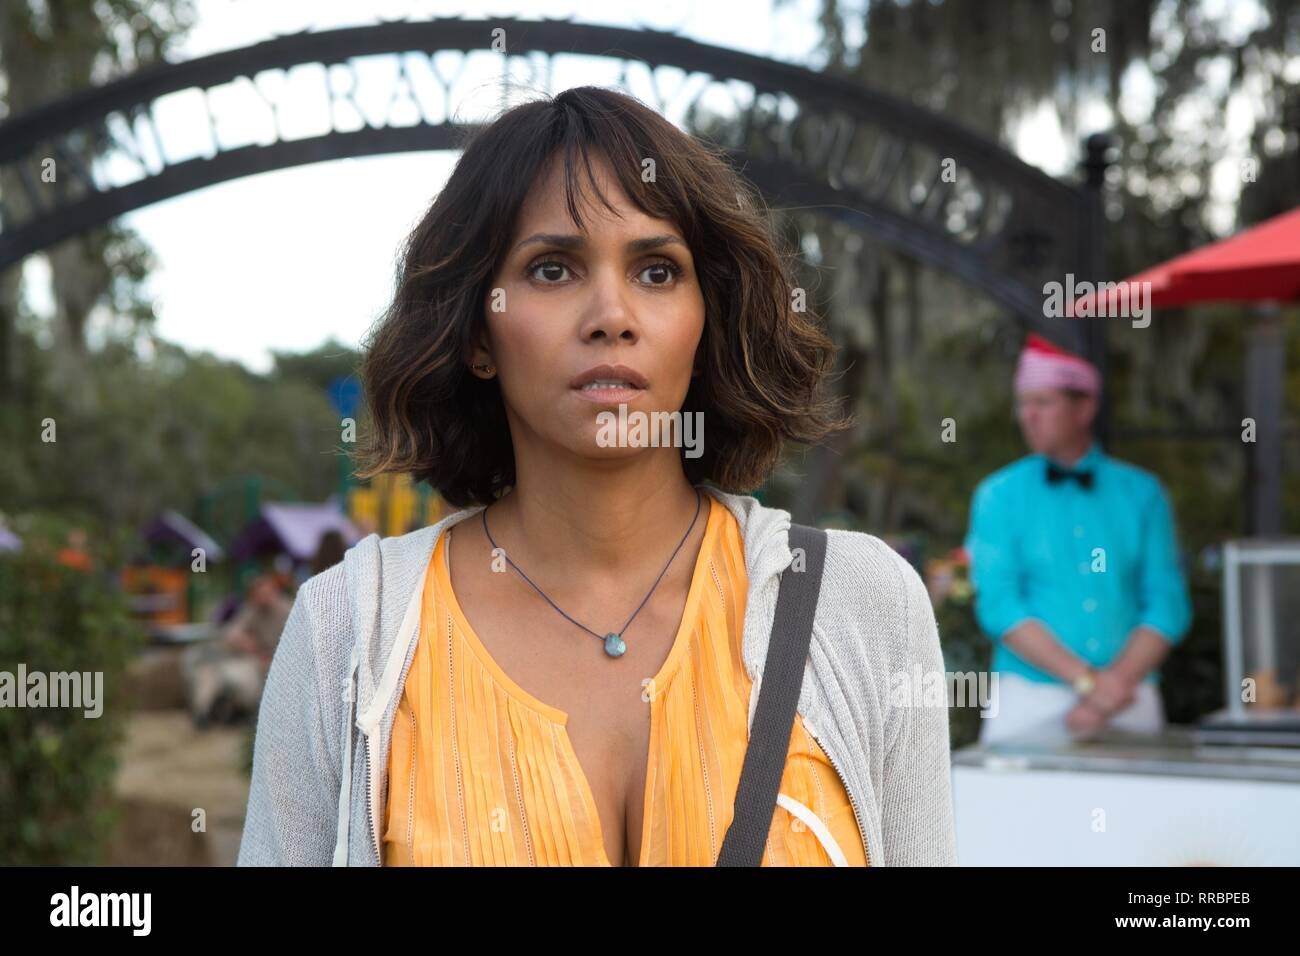 KIDNAP, HALLE BERRY, 2017 - Stock Image